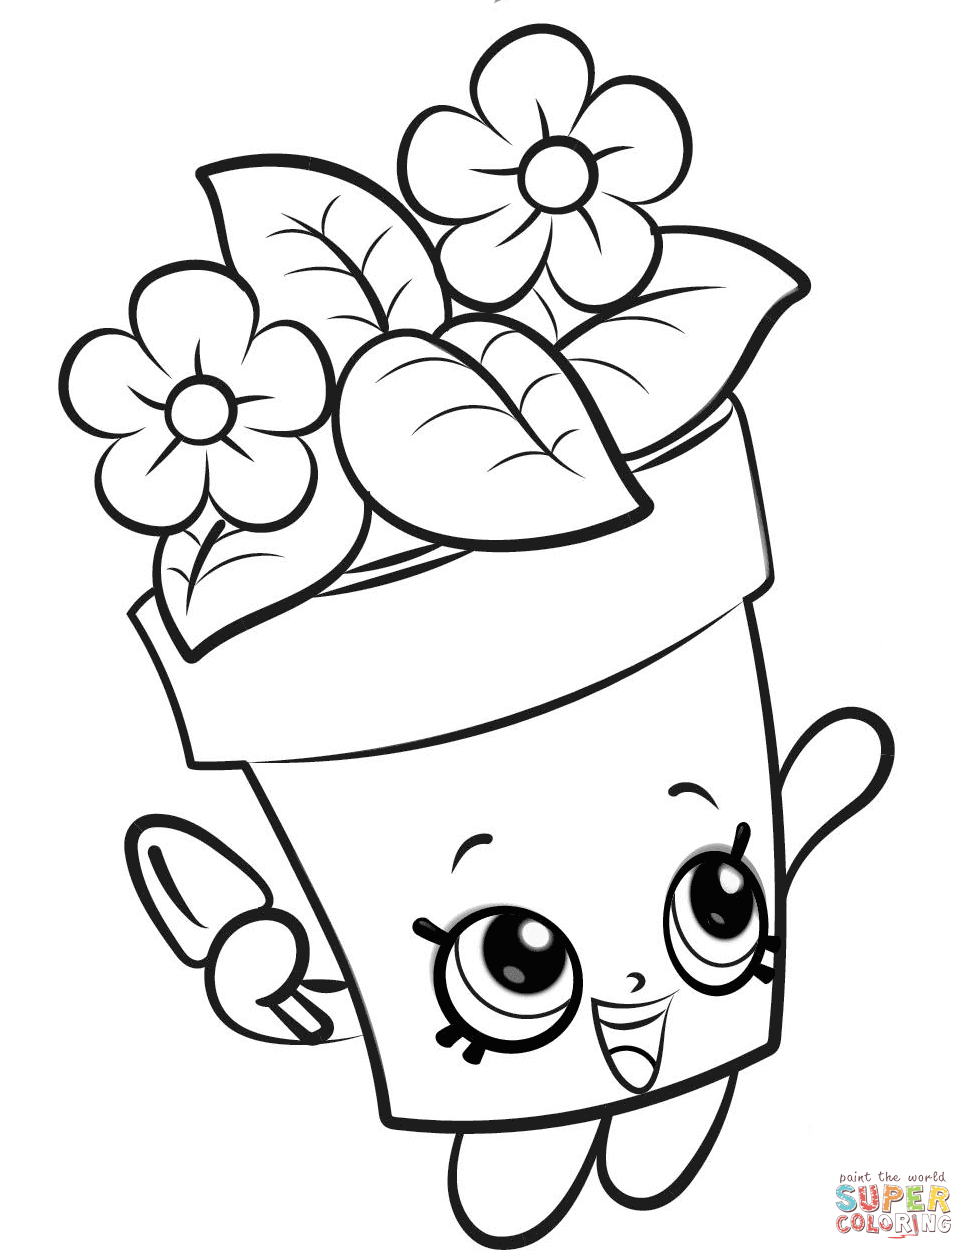 Peta Plant Shopkin Coloring Page Free Printable Coloring Pages Shopkin Coloring Pages Shopkins Colouring Pages Spring Coloring Pages